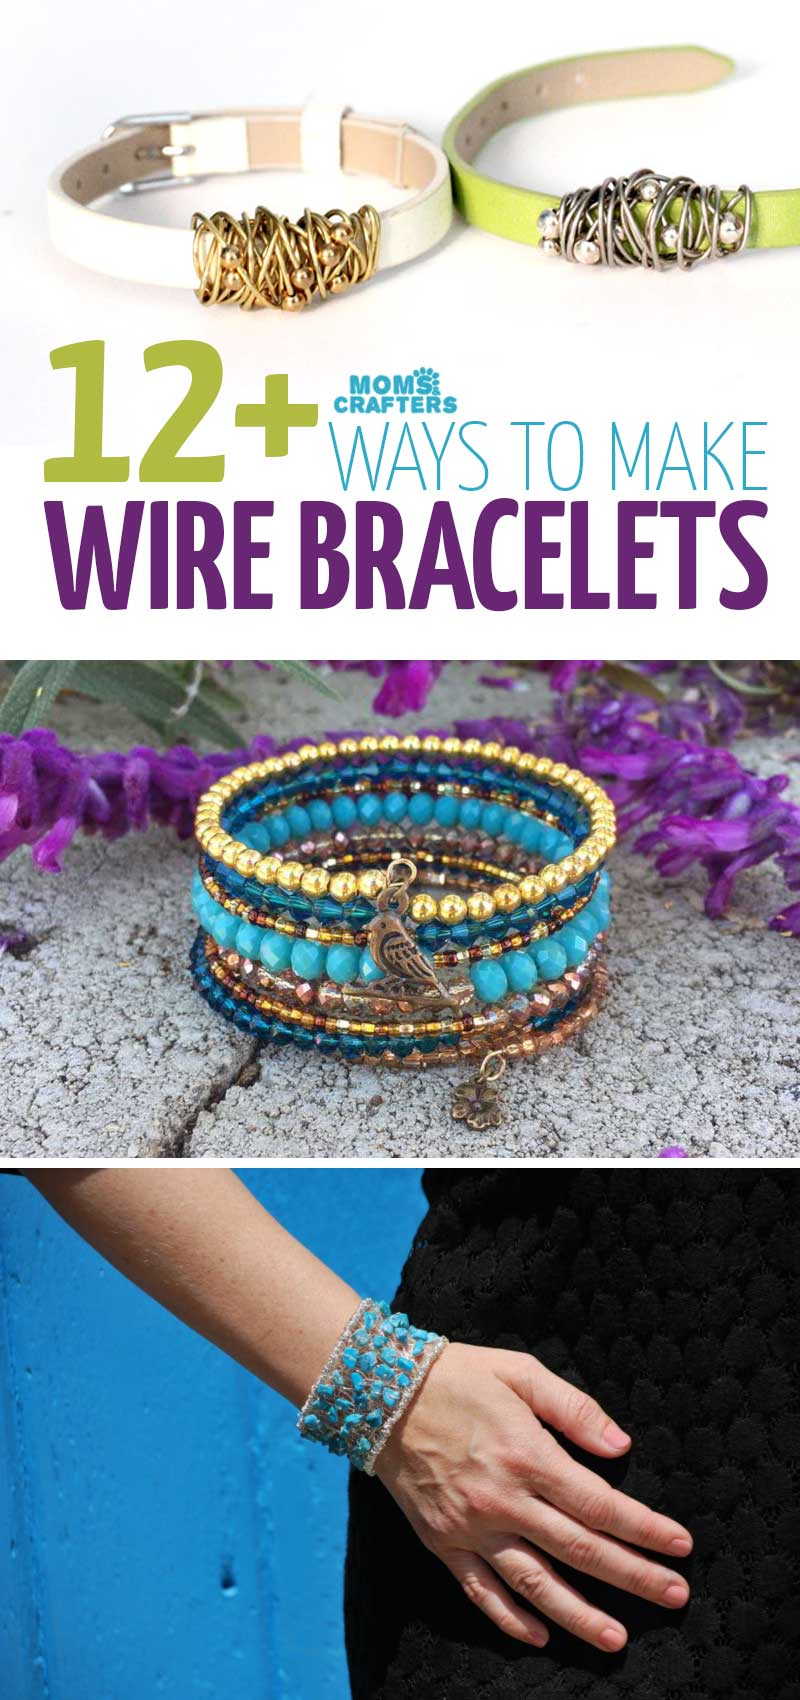 Click to learn how to make wire bracelets and for some DIY wire wrapped cuffs, wire wrapping tutorials, memory wire bracelets ideas and jewelry making DIY projects.